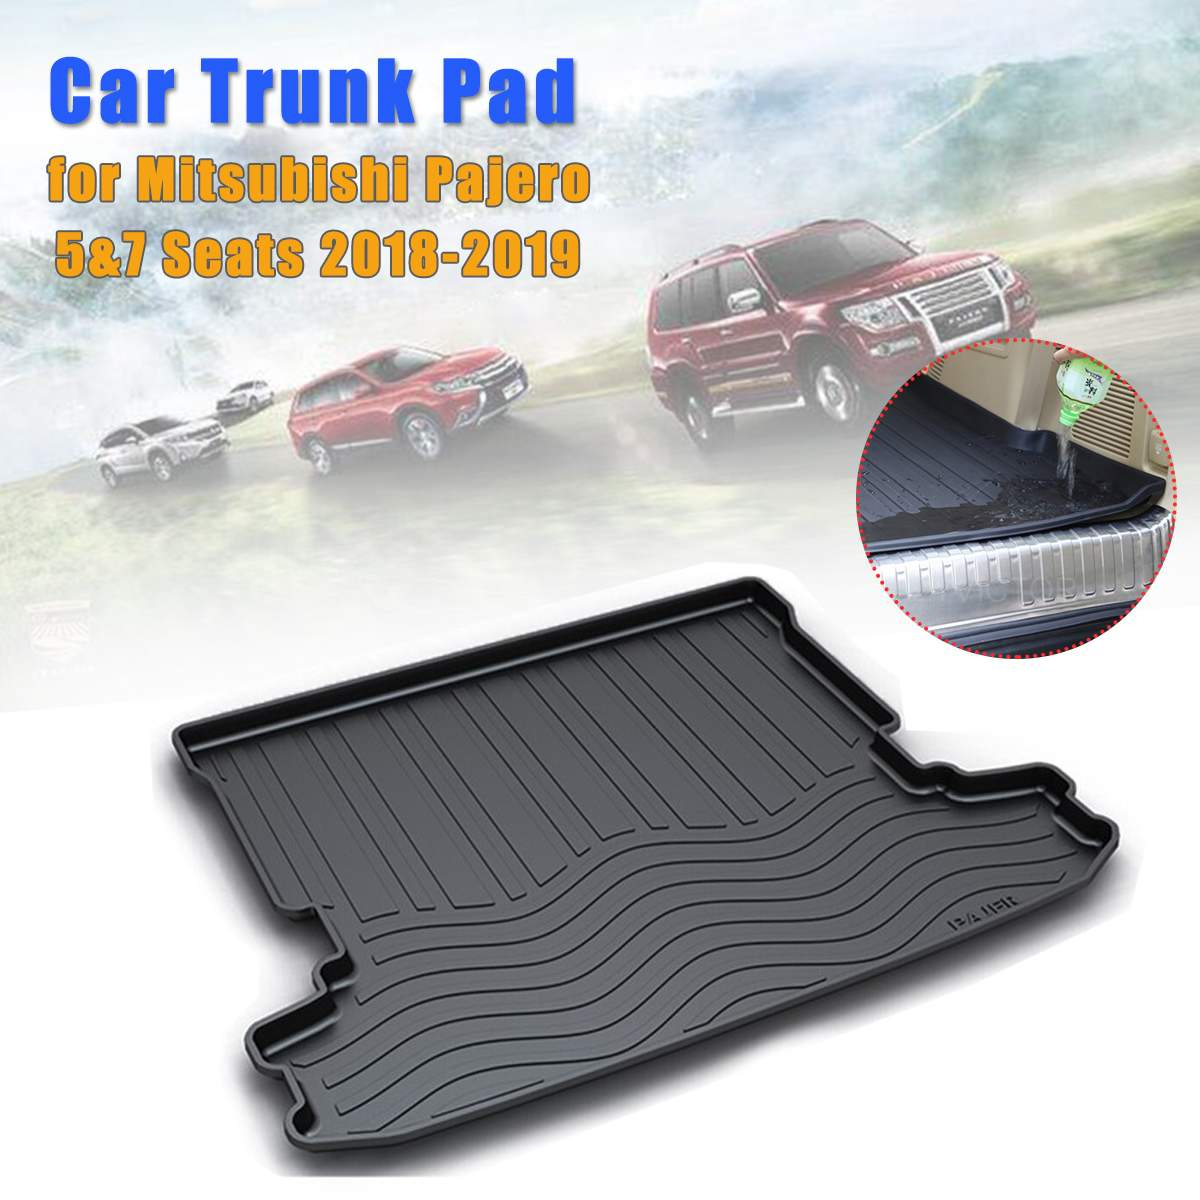 Rear Trunk Liner Boot Mat Cargo Tray Floor Carpet For Mitsubishi Pajero 2006-20116 2007 2008 2009 2010 2012 2013 2014 2015 2016